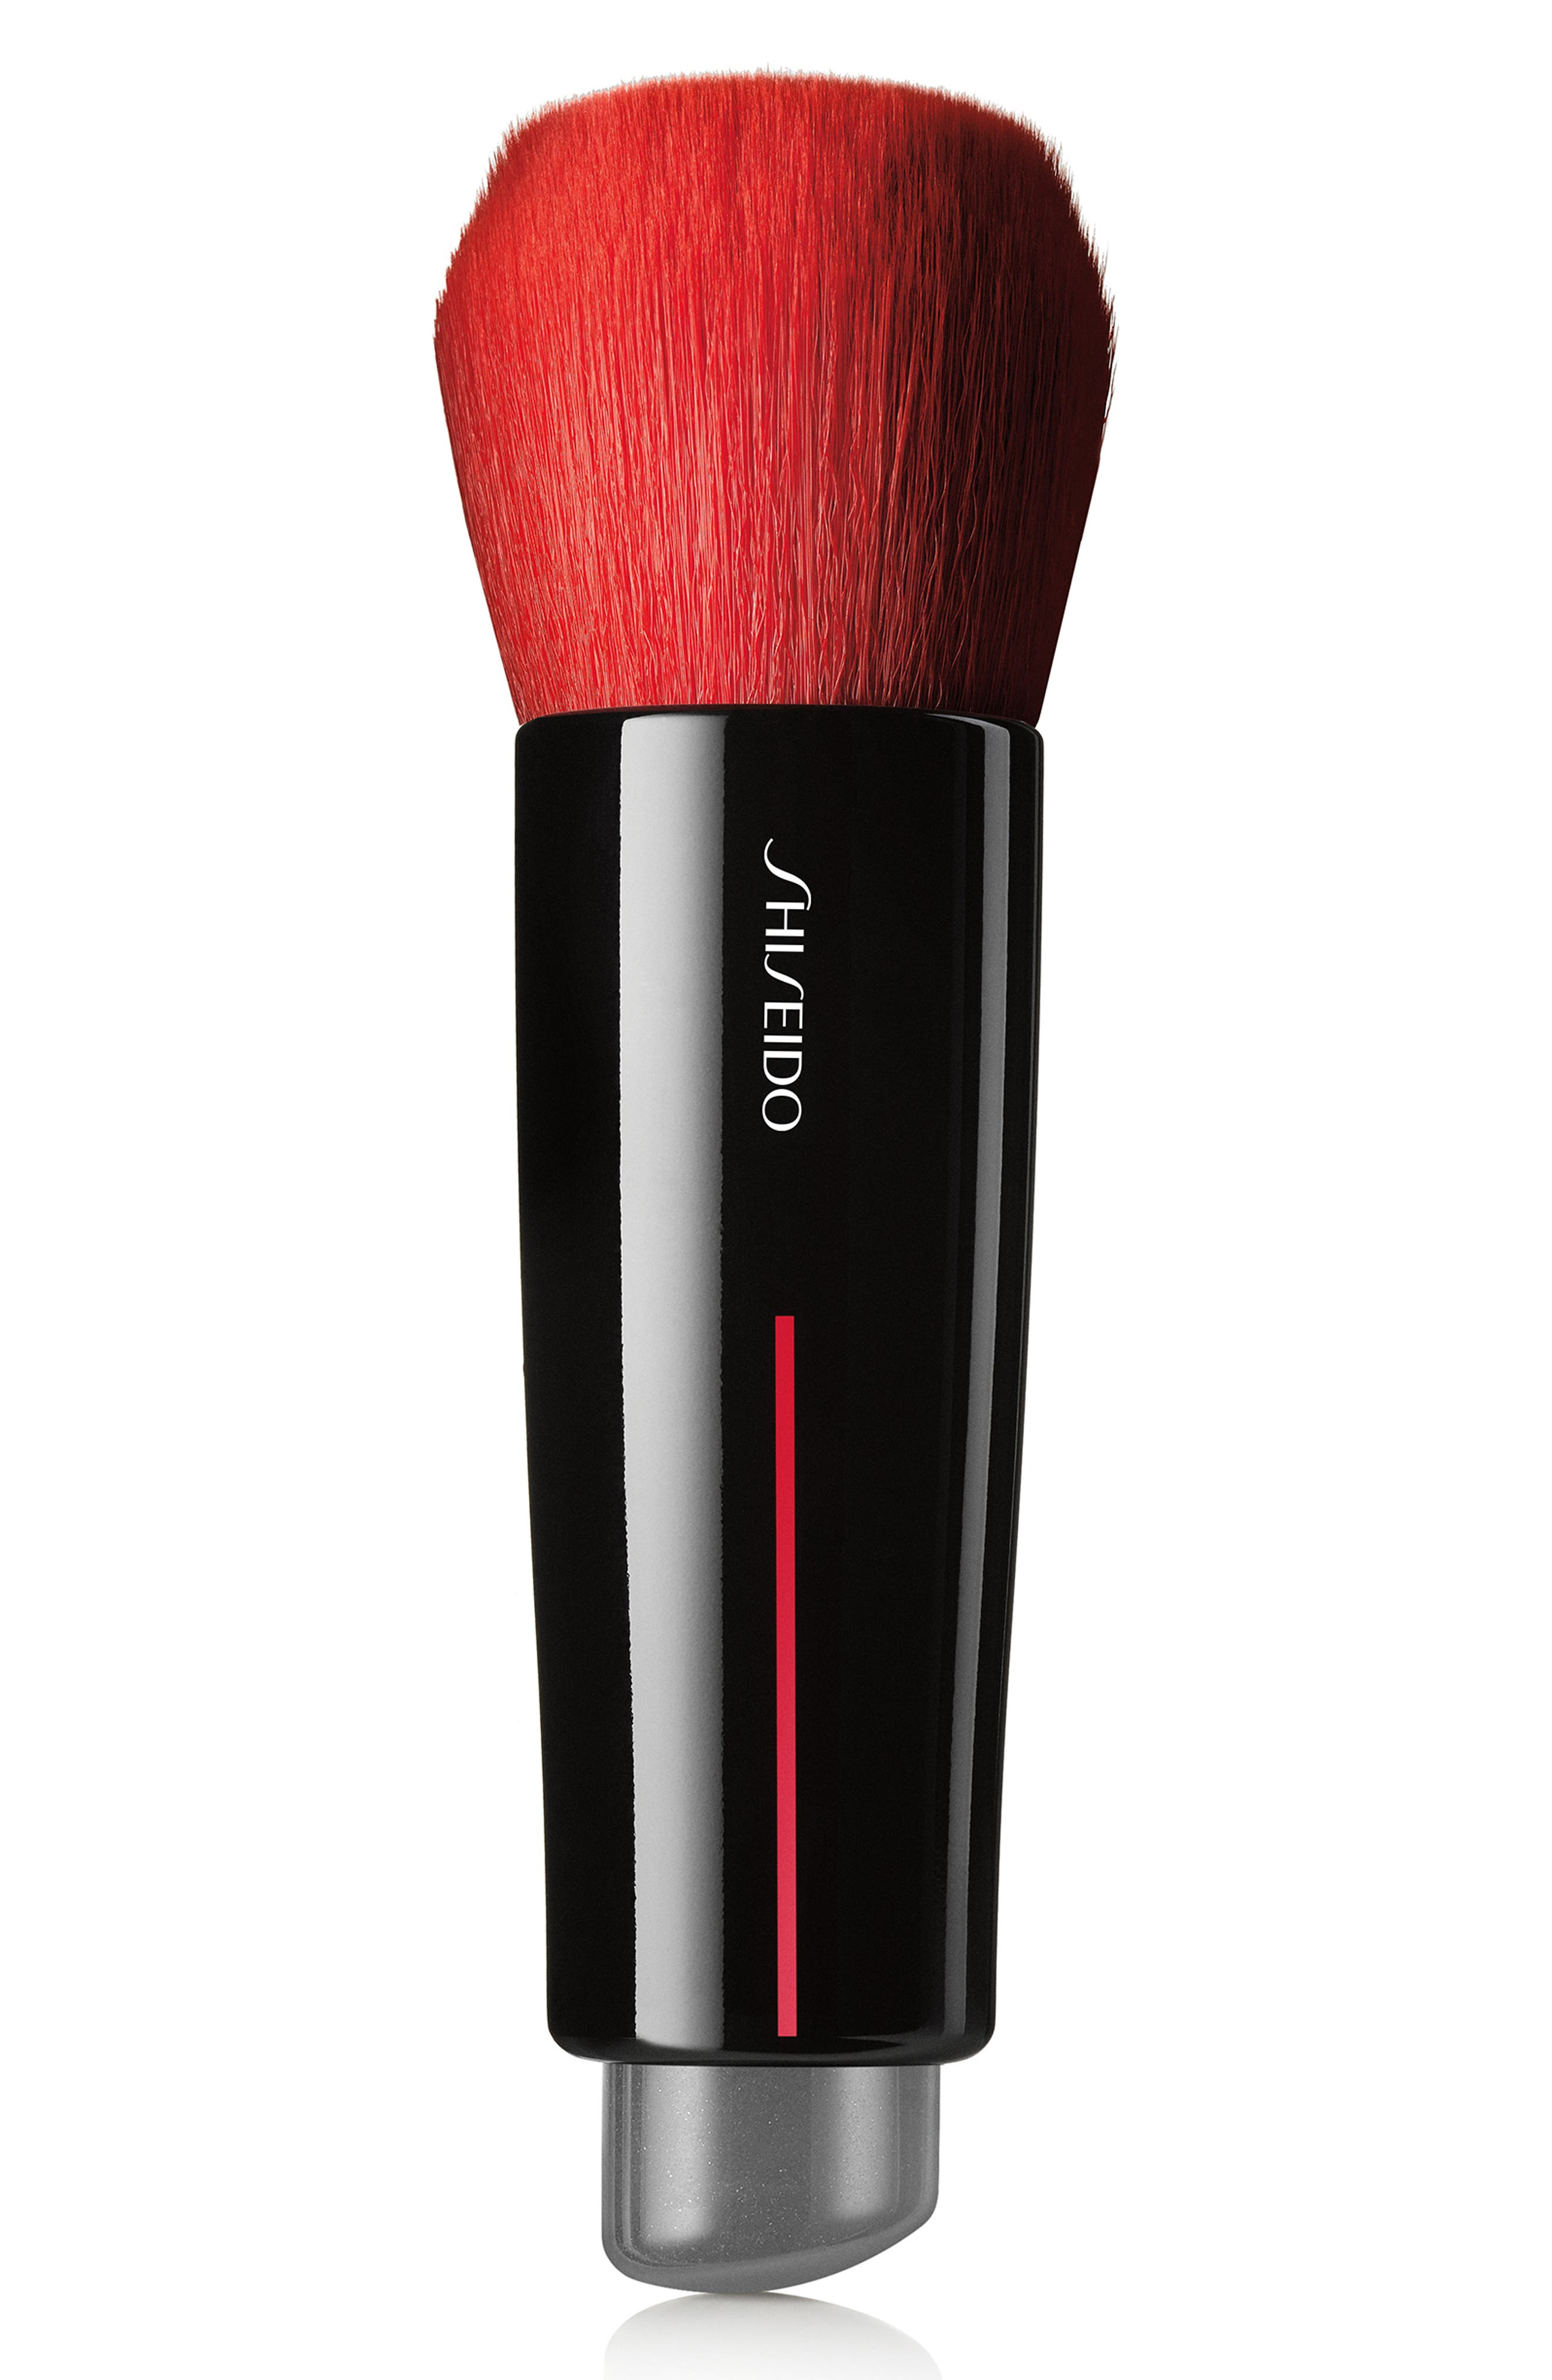 SHISEIDO, Daiya Fude Face Duo Brush, Main thumbnail 1, color, NO COLOR